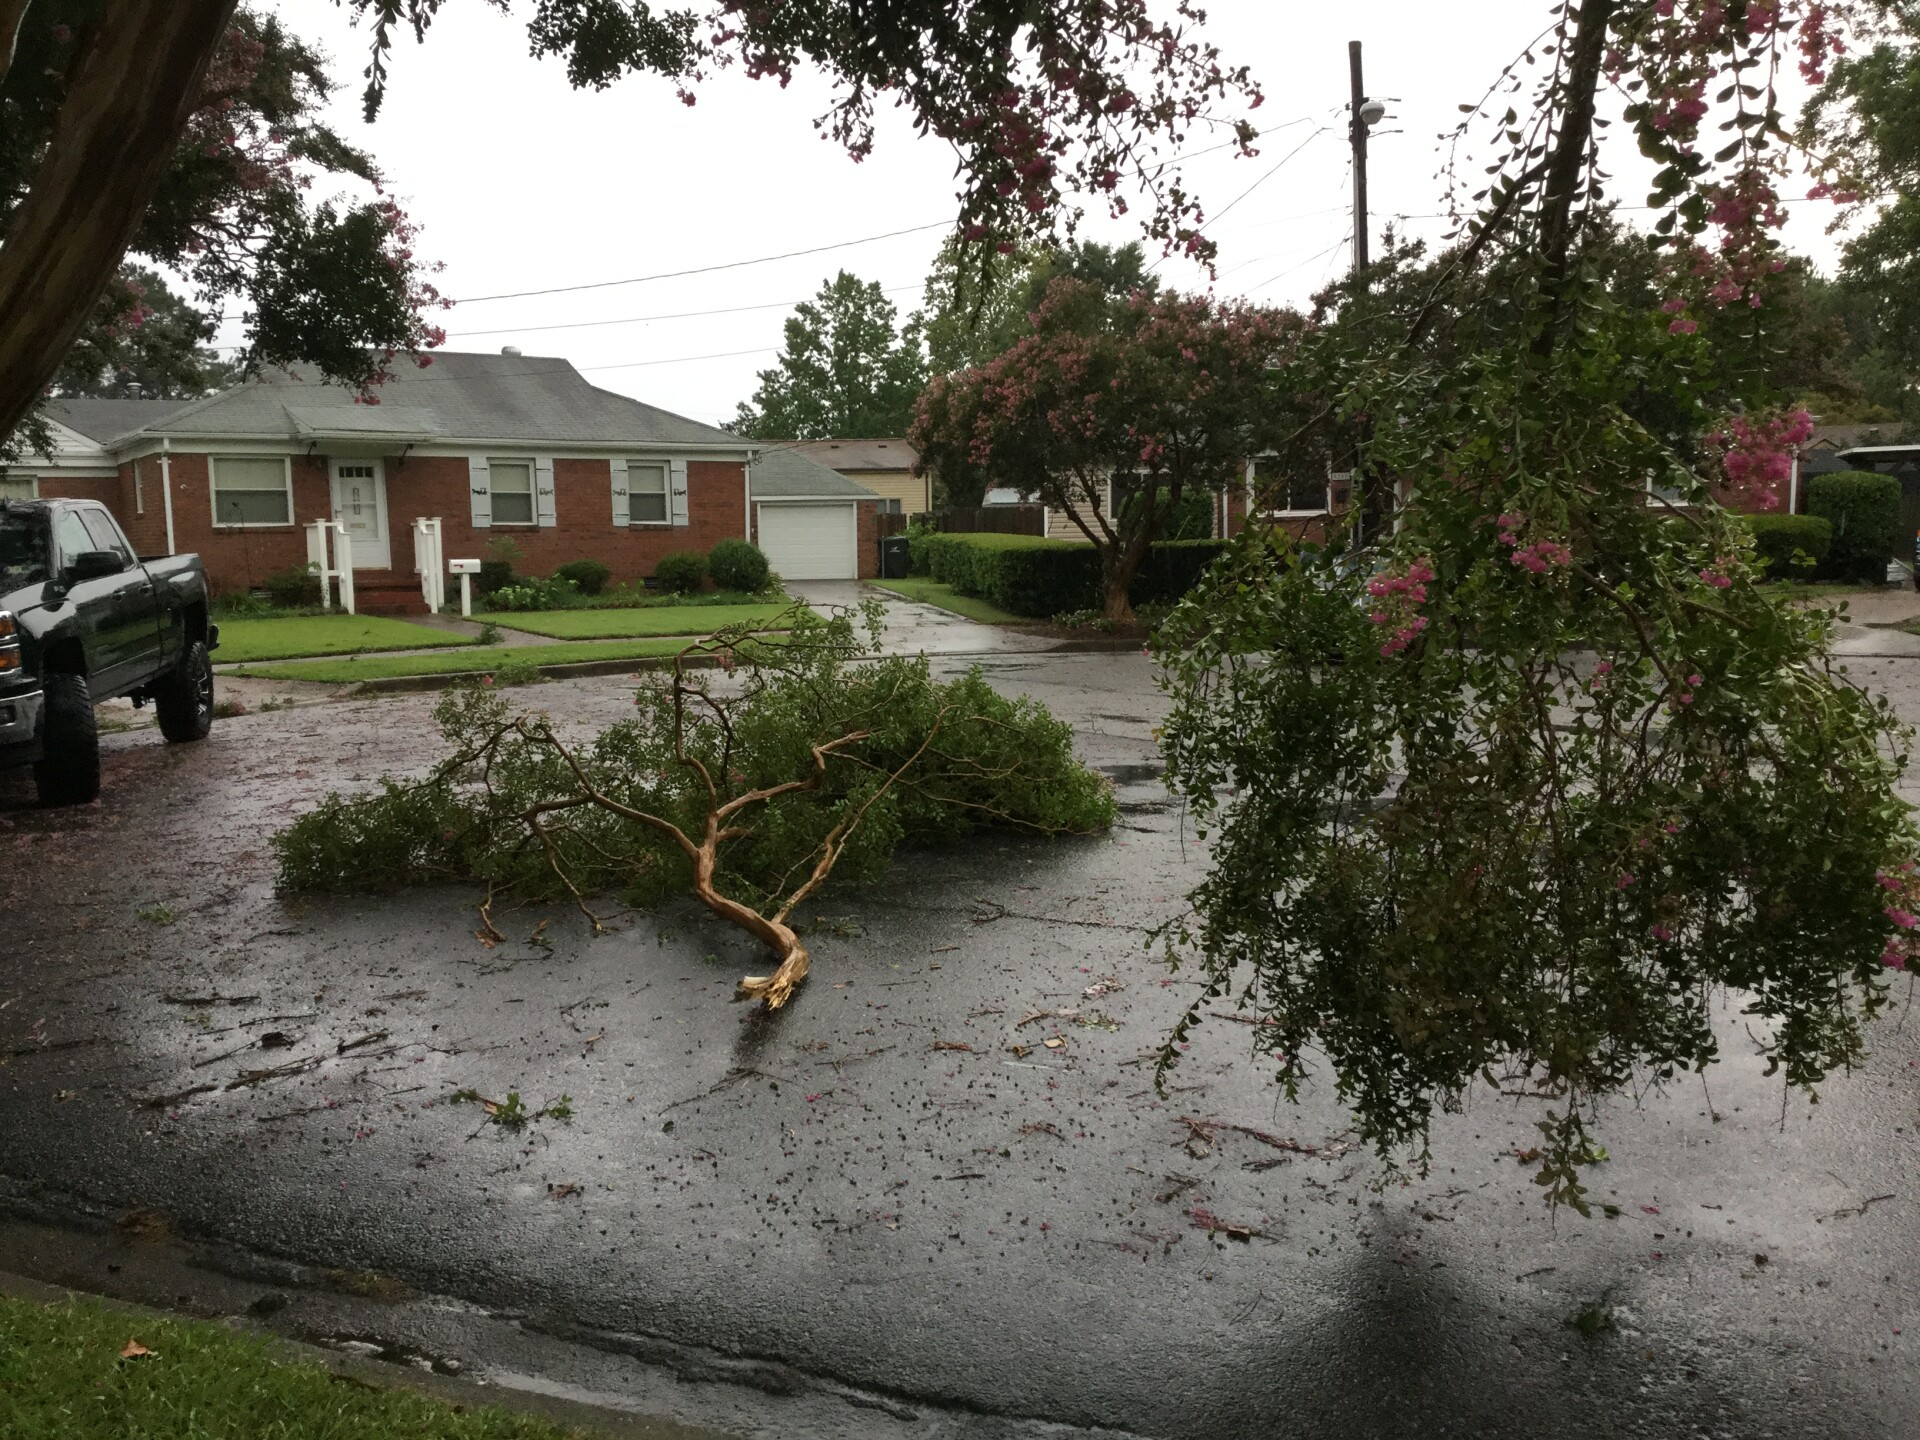 Photos: Photo gallery: August 4 storm damage andflooding